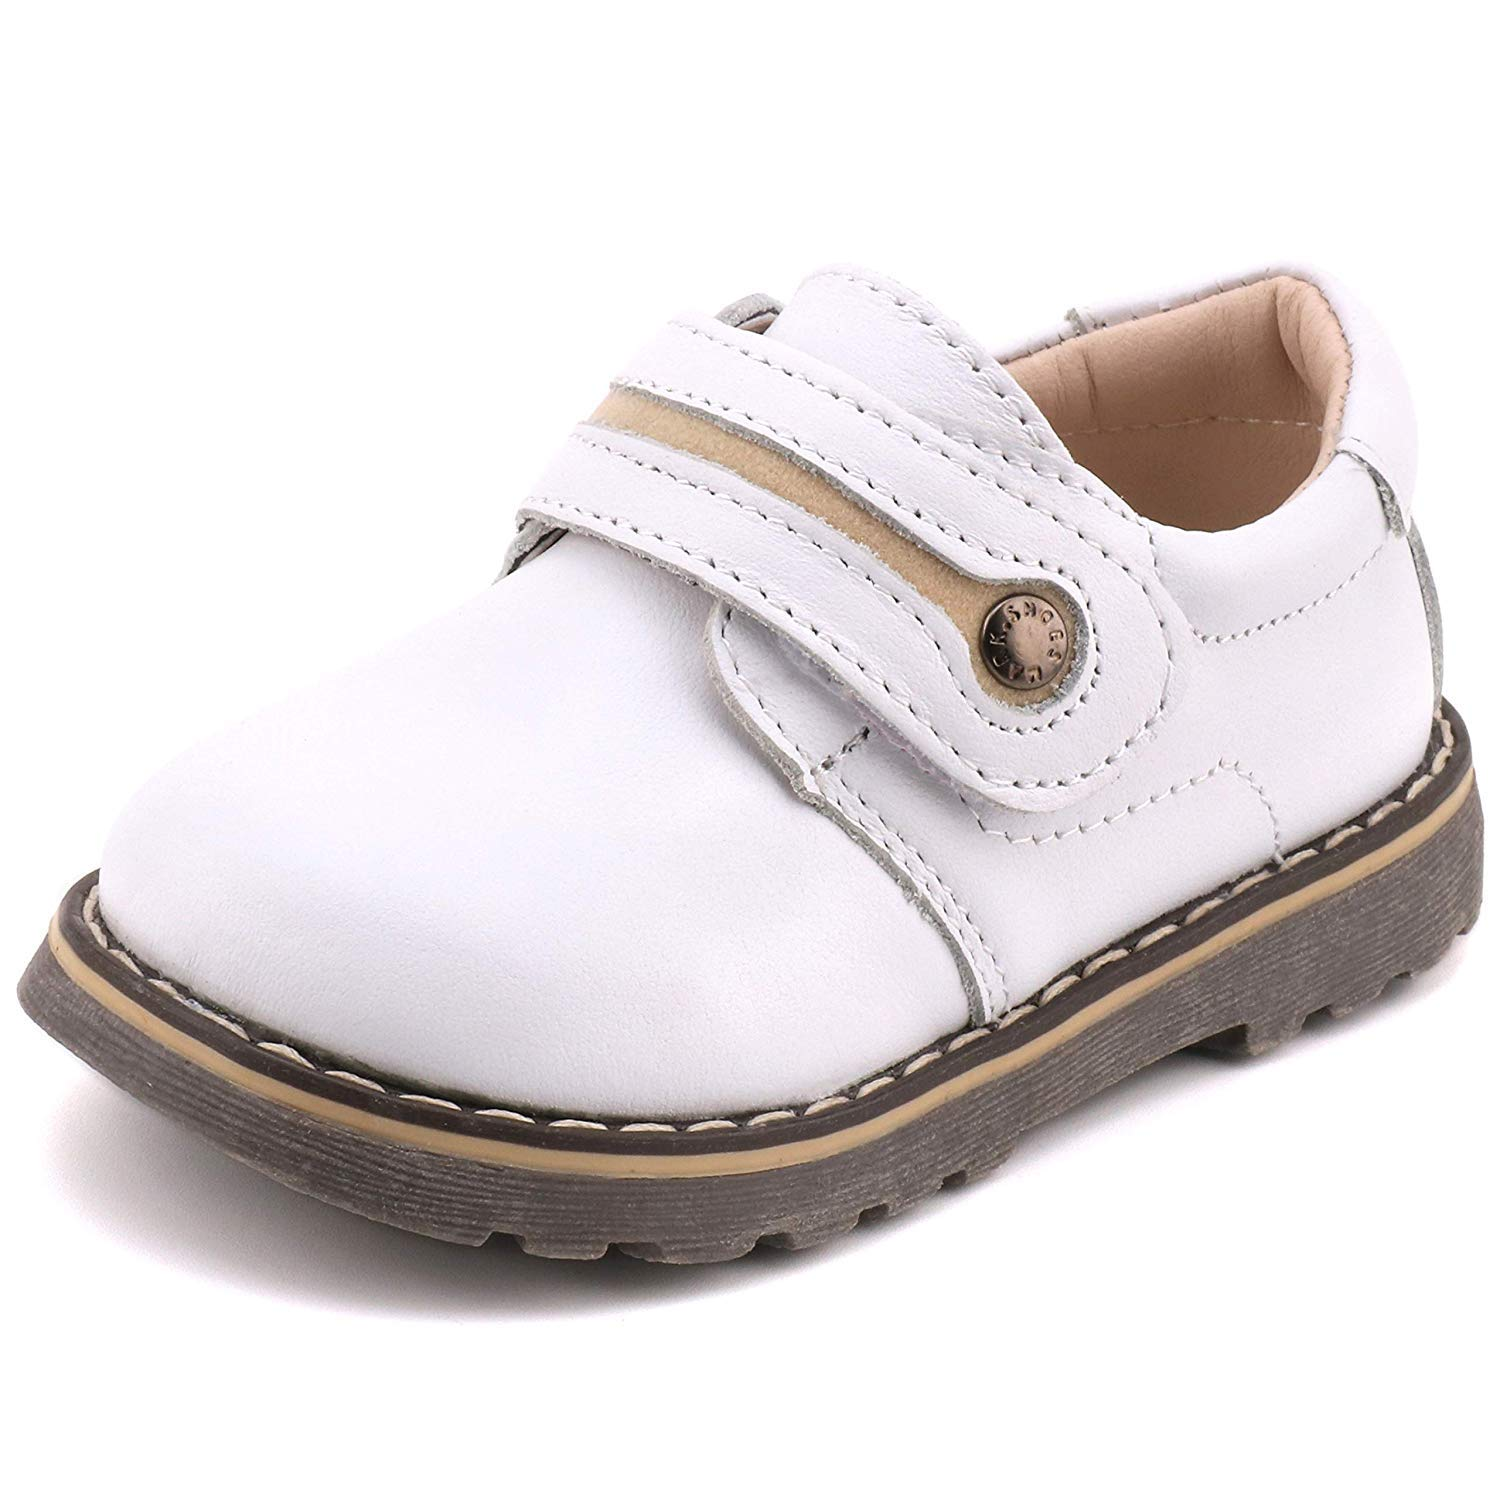 Femizee Toddler Boys Leather Loafers Comfort Uniform Oxford Dress Wedding Shoes